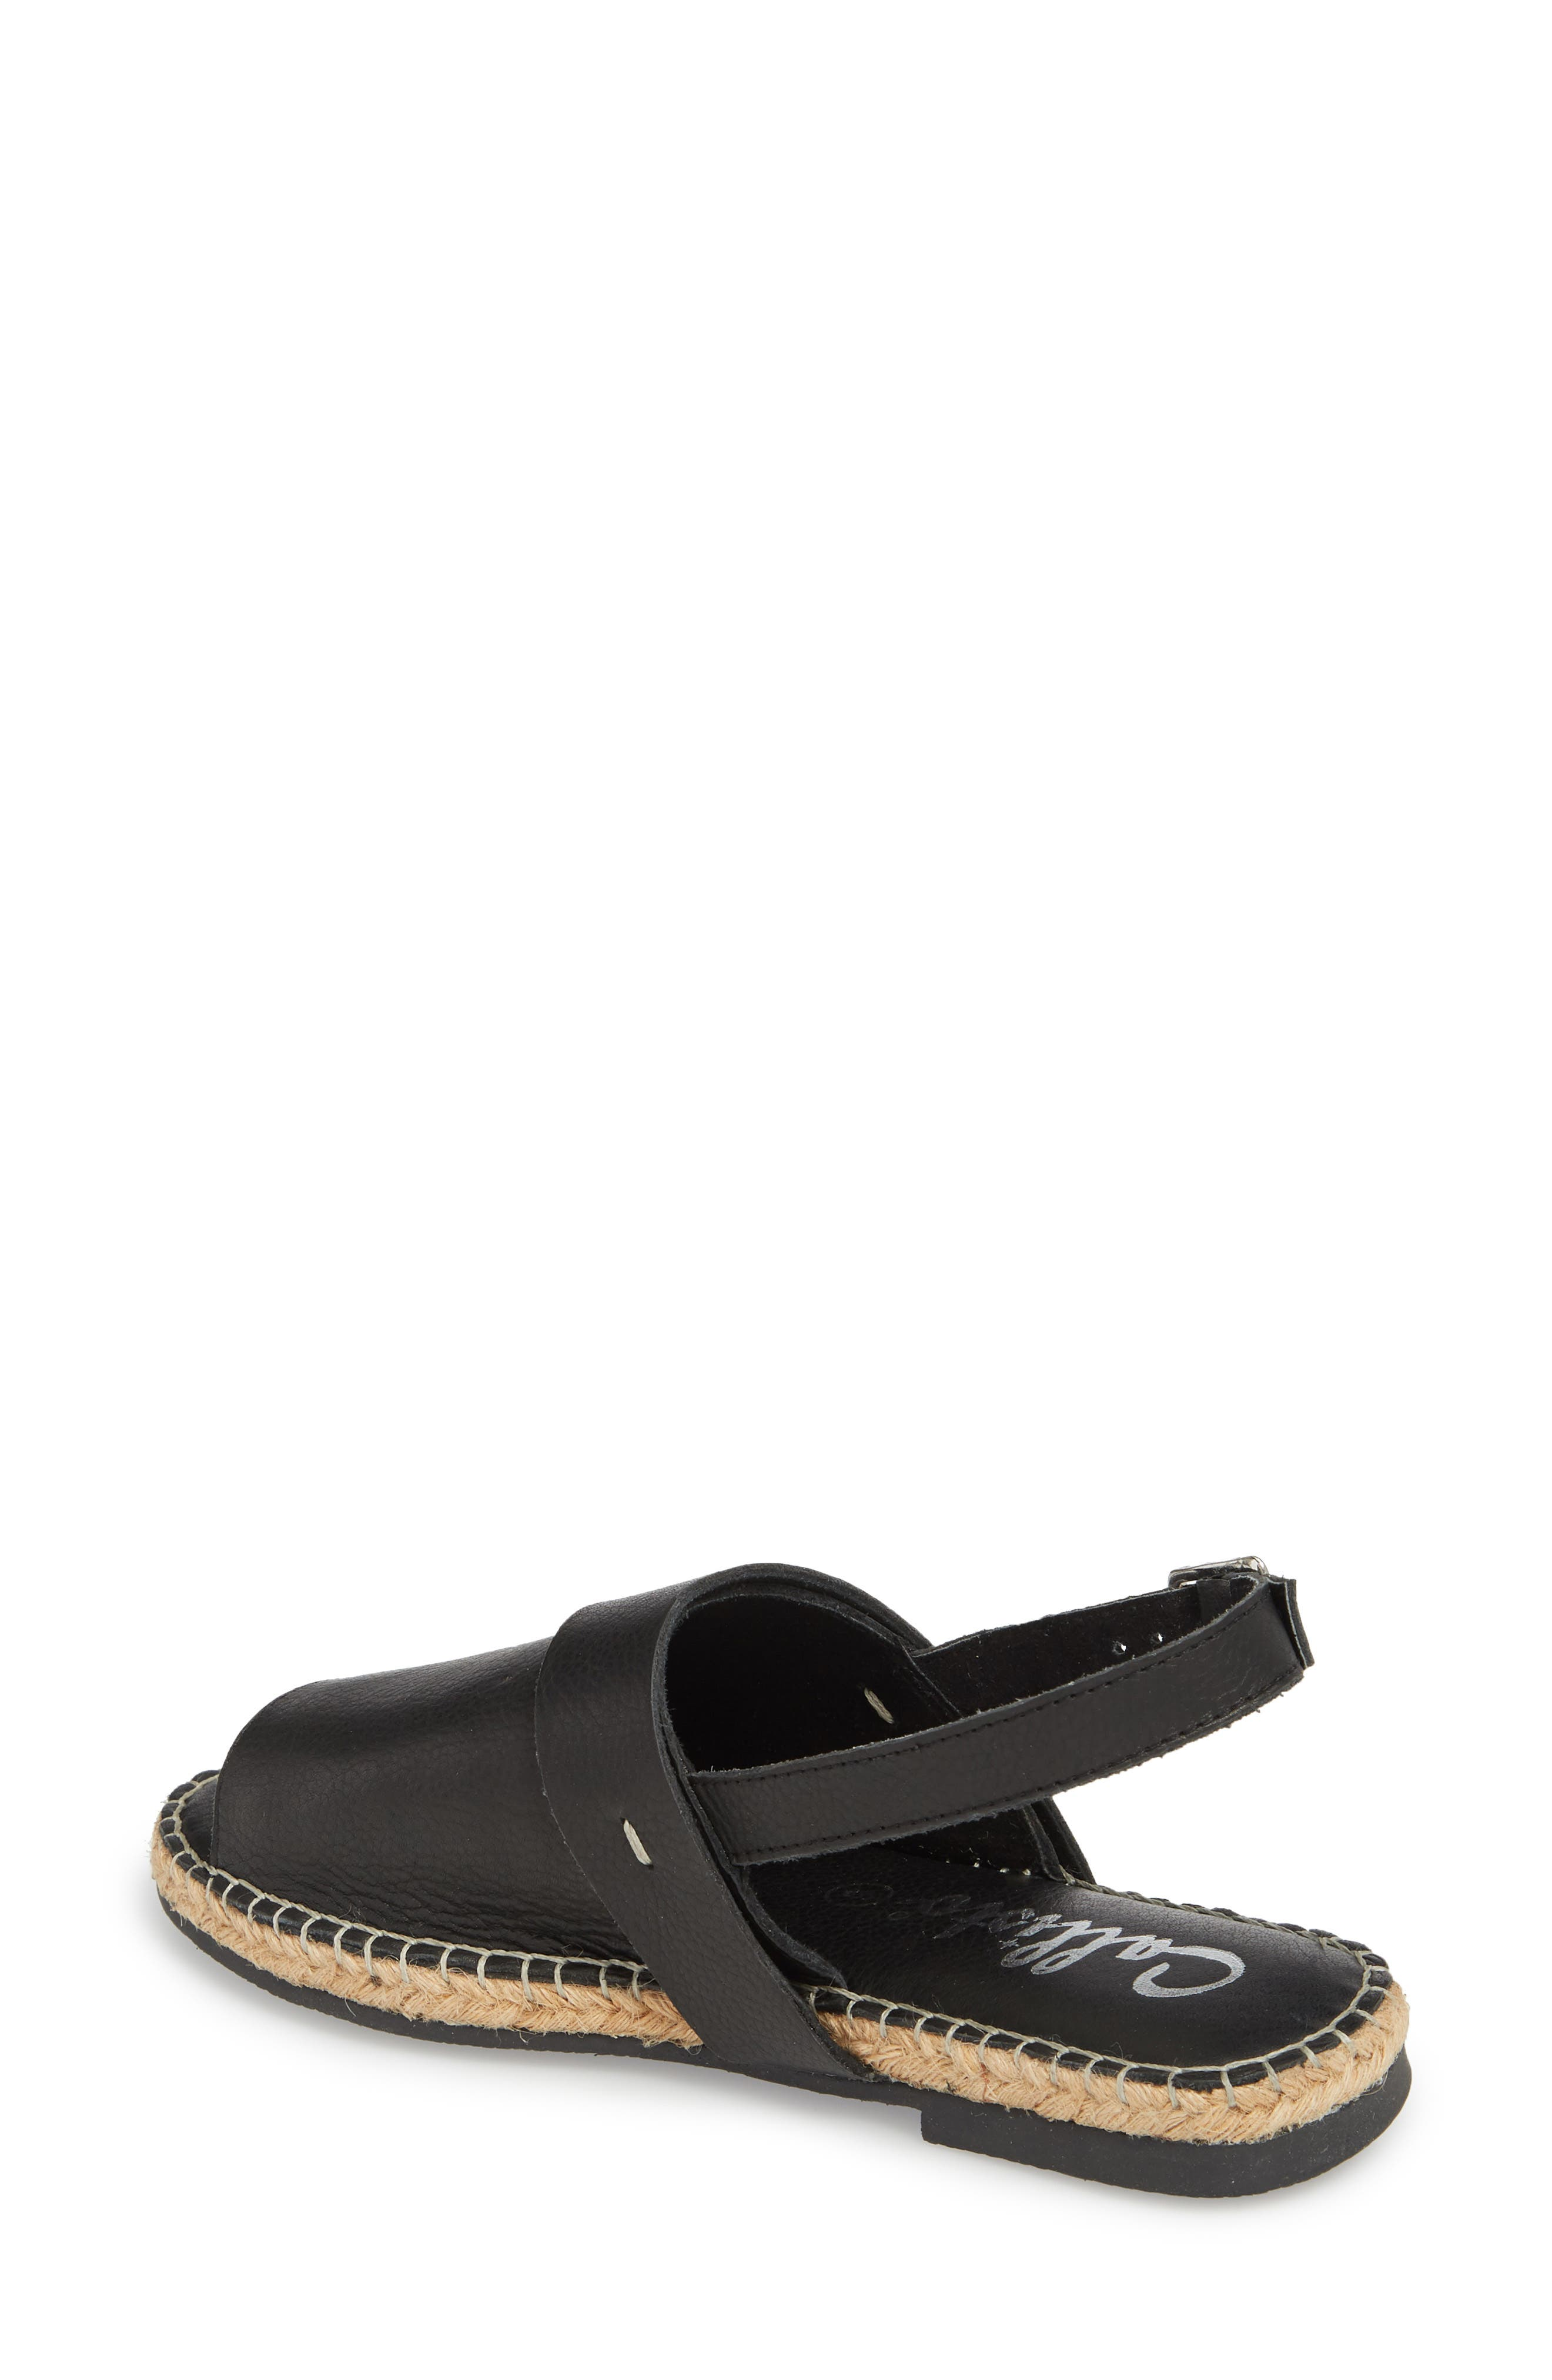 Turn Key Espadrille Sandal,                             Alternate thumbnail 2, color,                             BLACK LEATHER